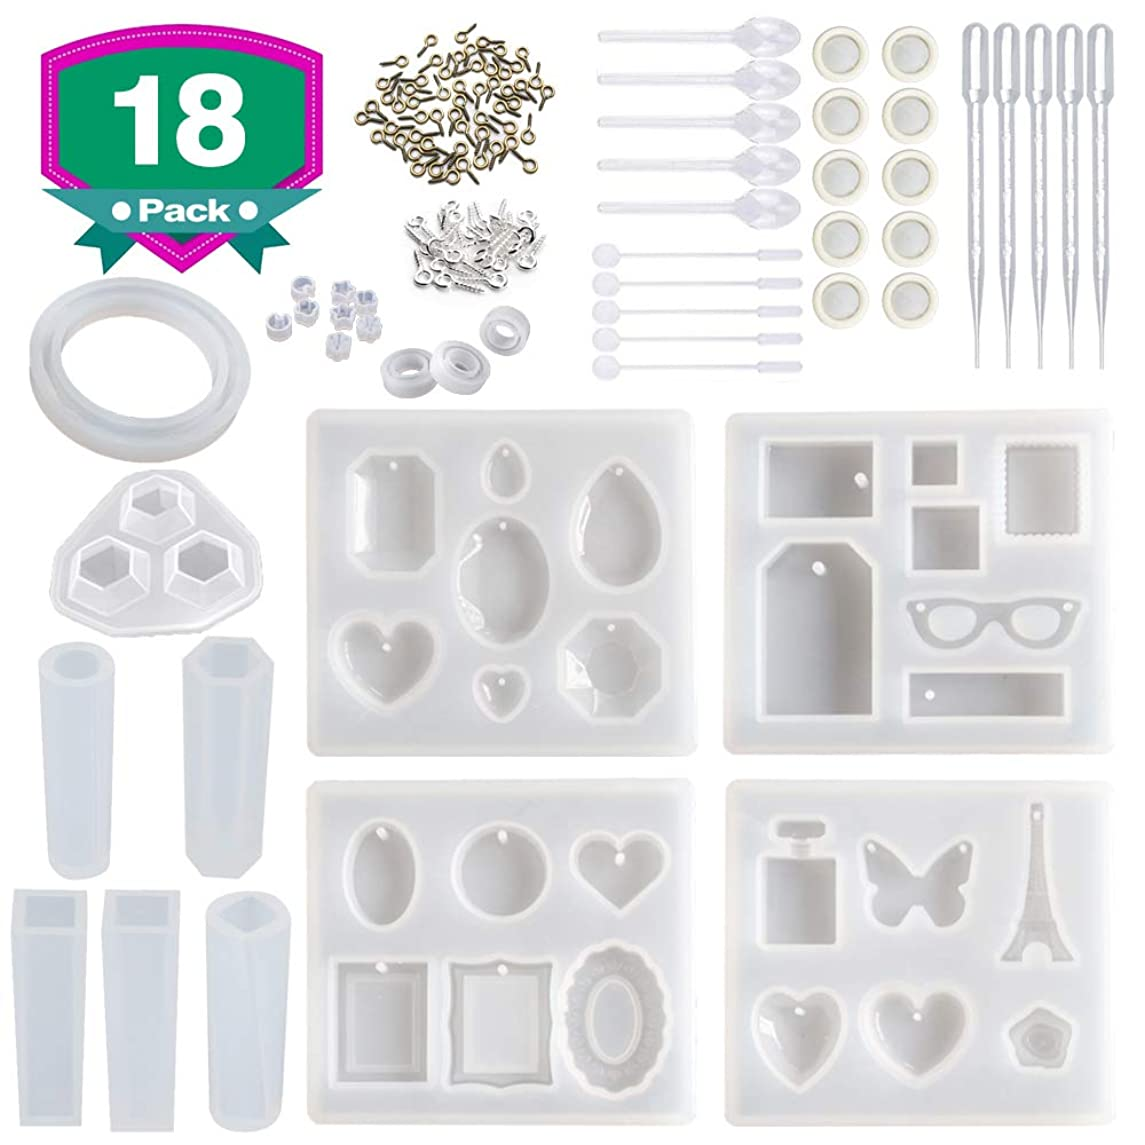 Resin Molds for Jewelry,18 Pack Silicone Molds Kit for Casting Epoxy Resin UV Resin,Include Pendant, Bracelet, Earring, Ring,Diamond Molds,with Resin Mixing and Measuring Tools